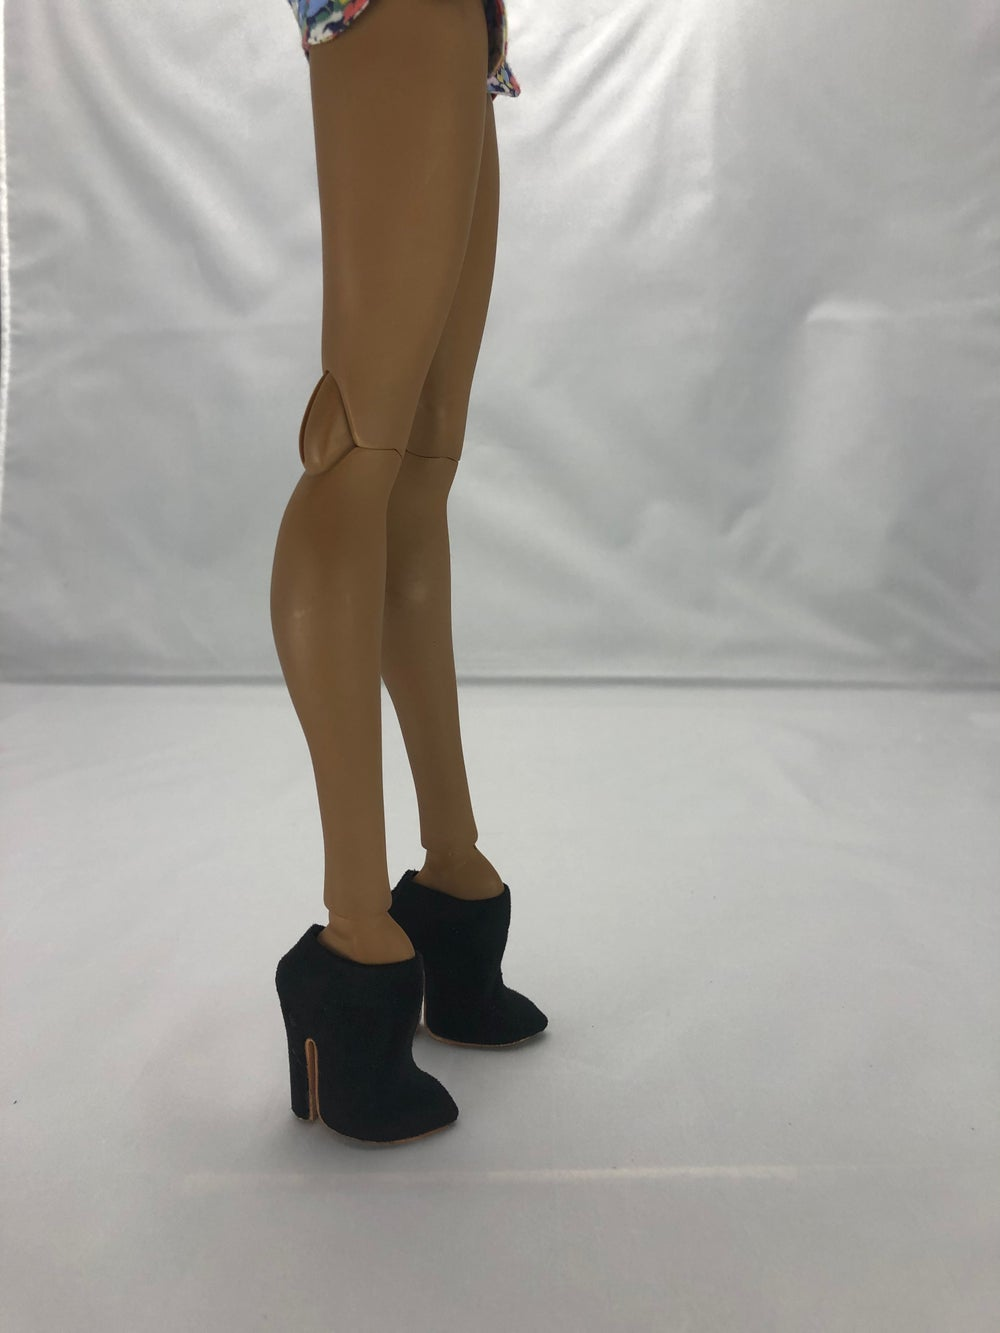 Black Suede Ankle Boot: Pidgin Doll